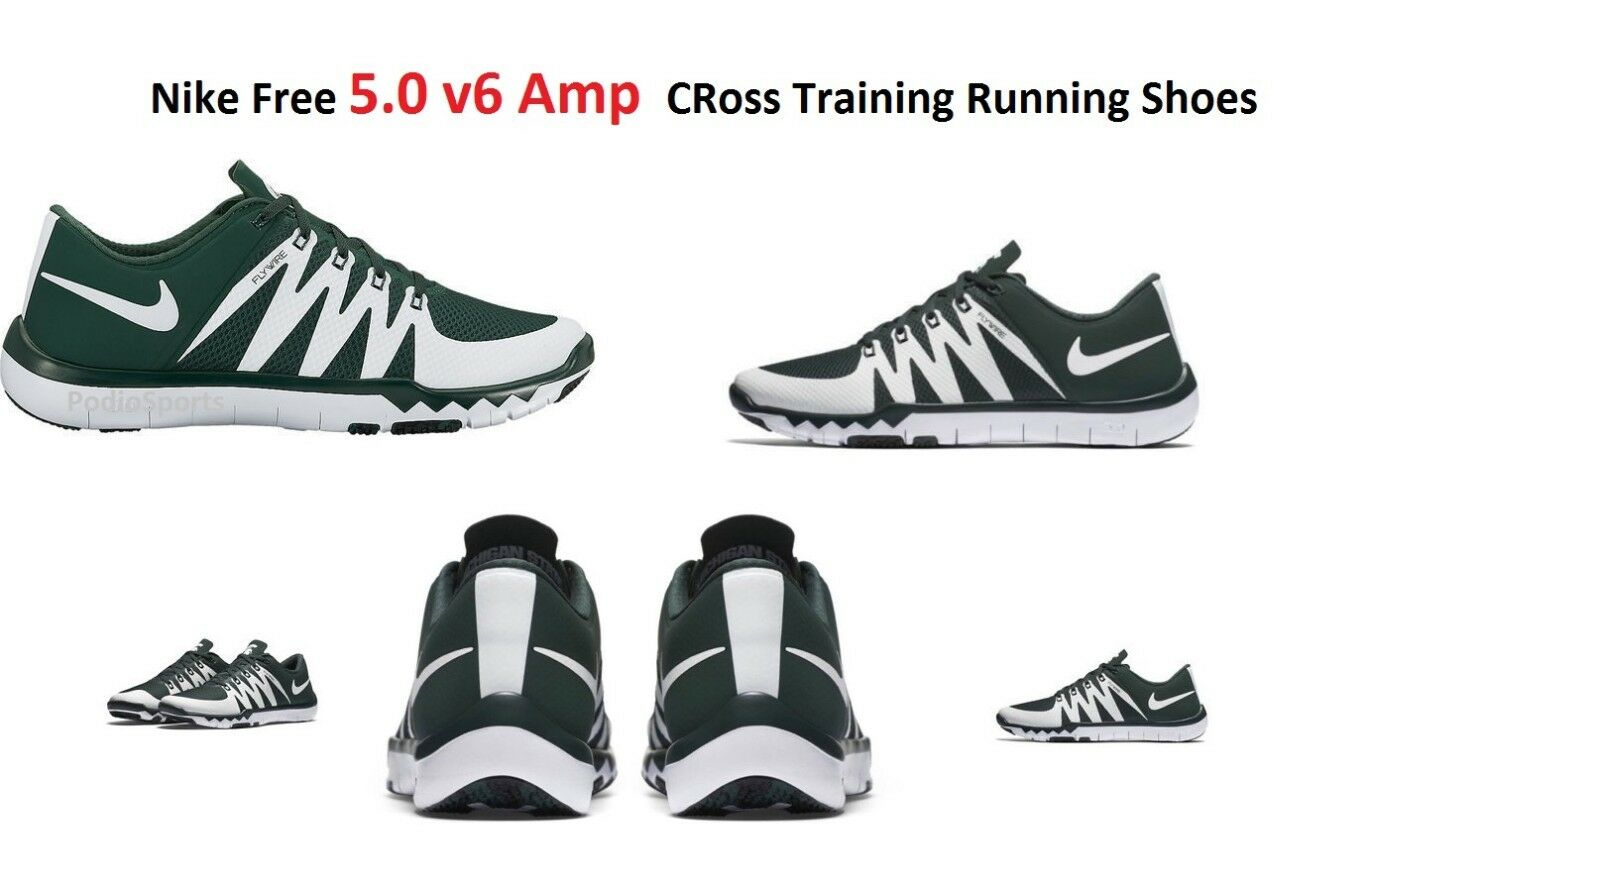 NEW Nike-Free-5-0-v6-AMP-CRossTraining-Shoes-Runners- 723939 300  Cheap and fashionable